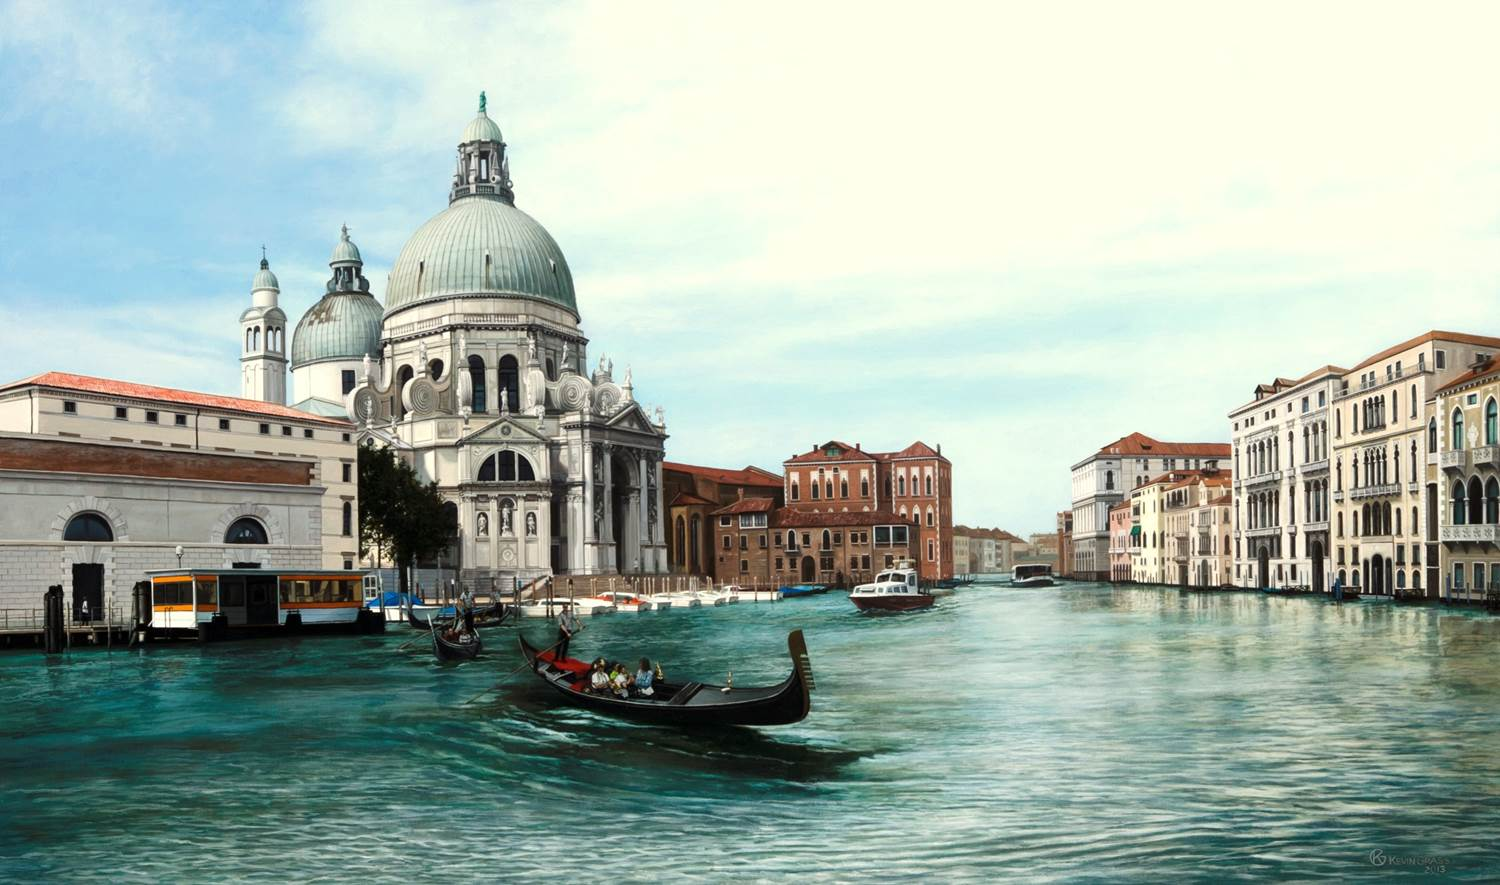 View of the Santa Maria della Salute Venice